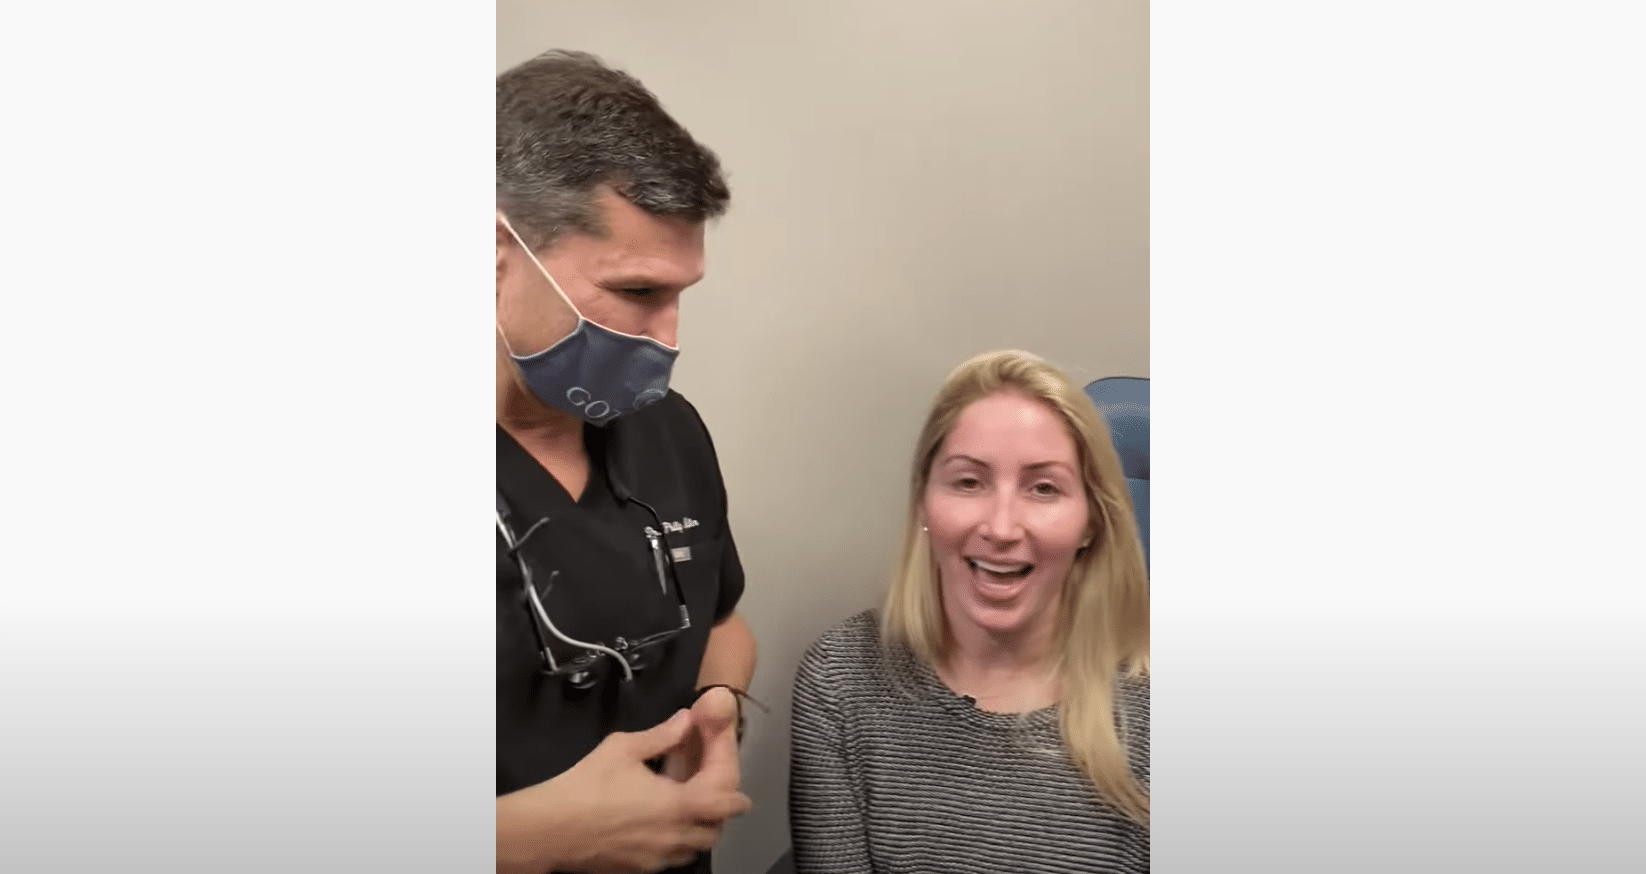 Flawless Rhinoplasty Results One Year After Surgery in New York City